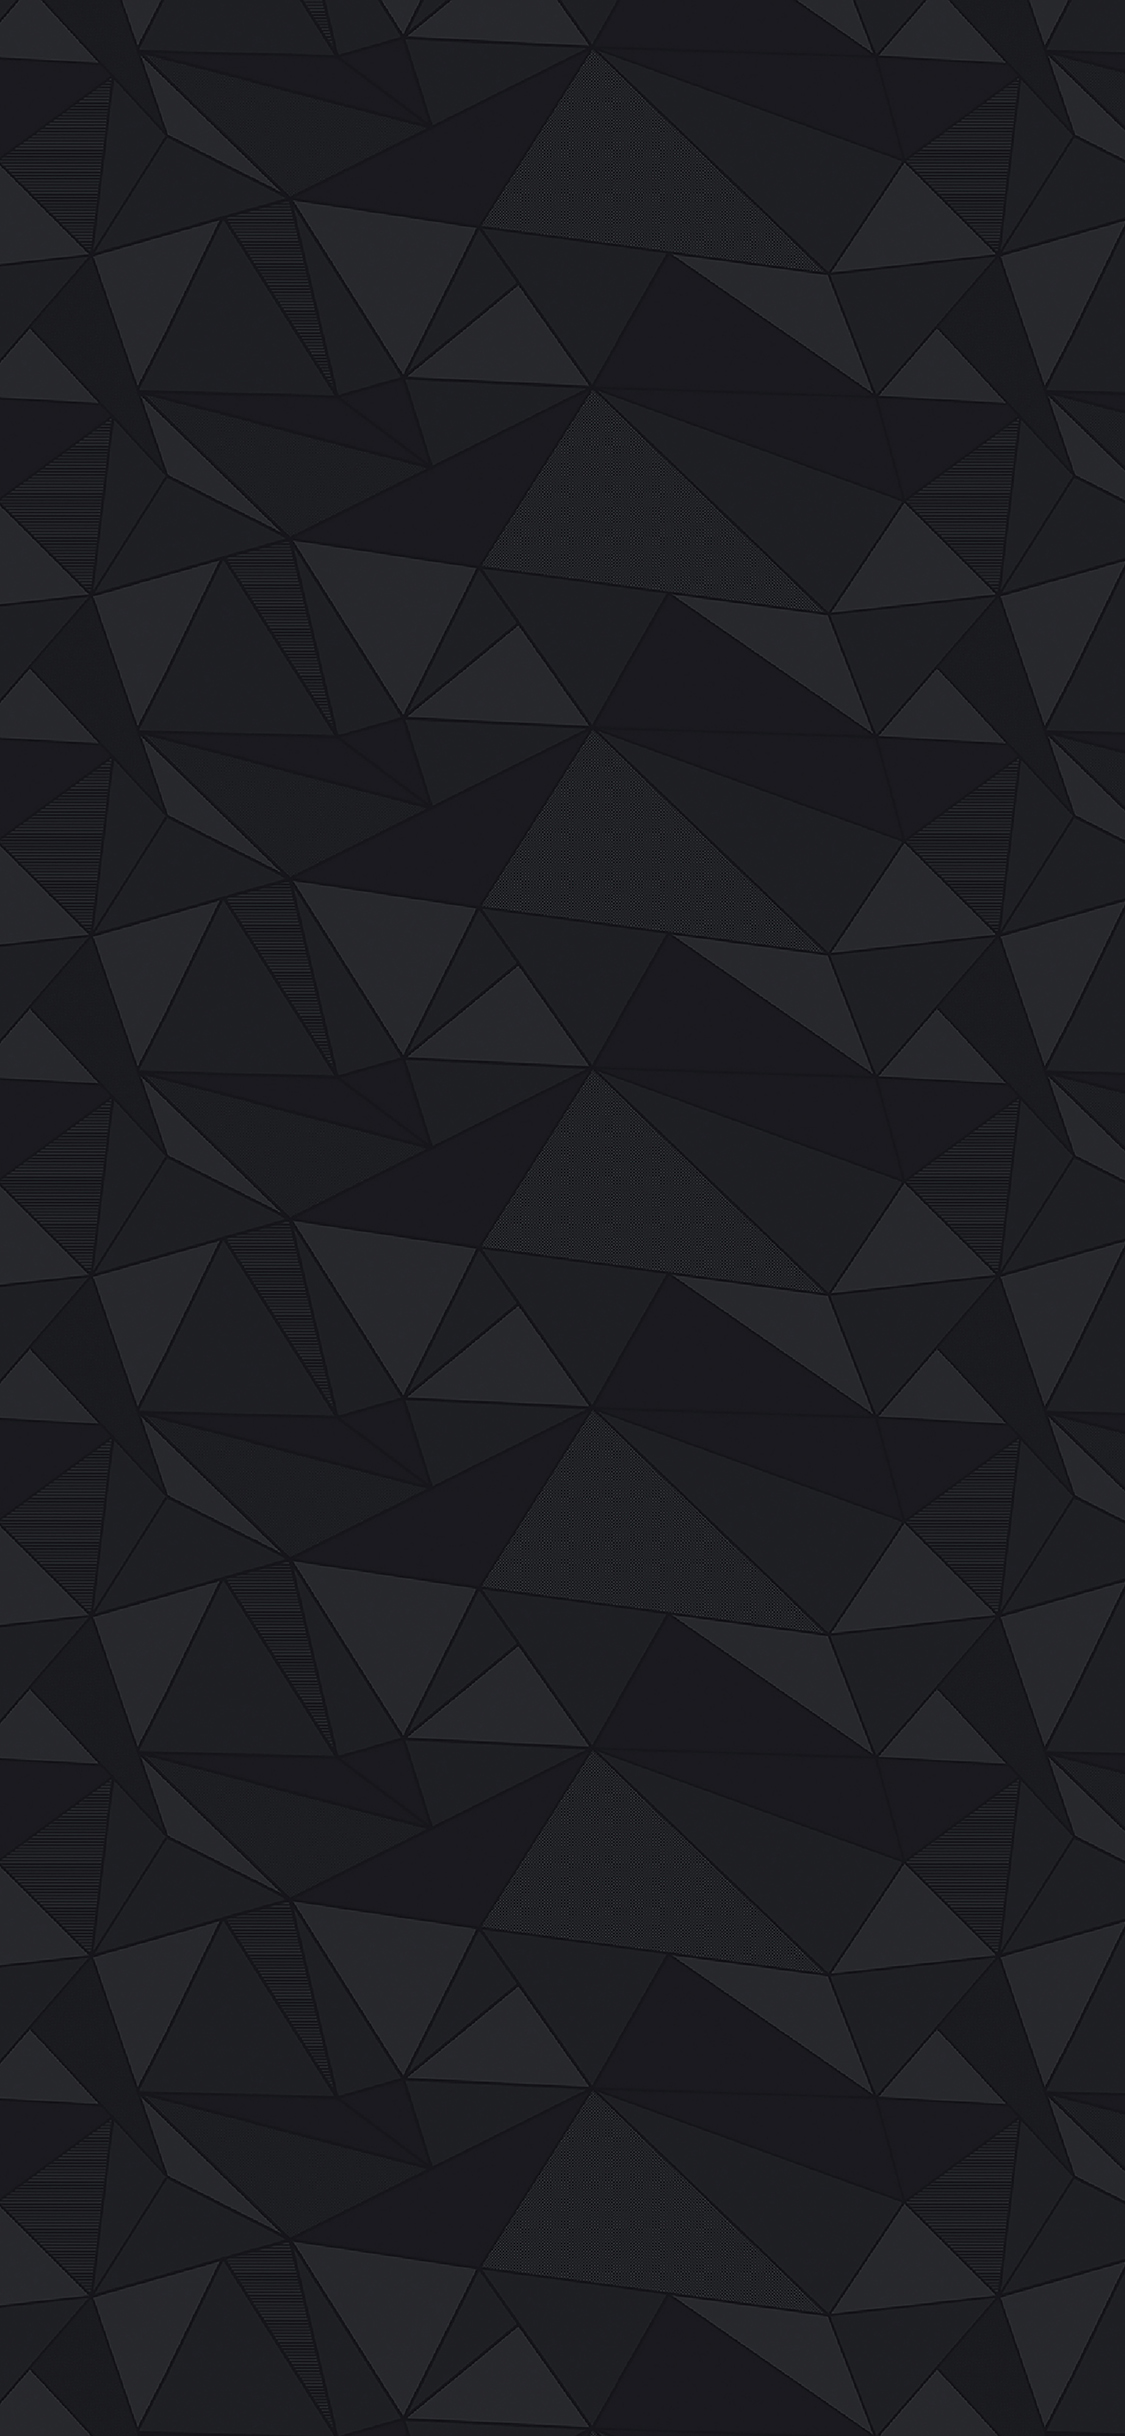 iPhoneXpapers.com-Apple-iPhone-wallpaper-vd16-triangle-in-dark-pattern